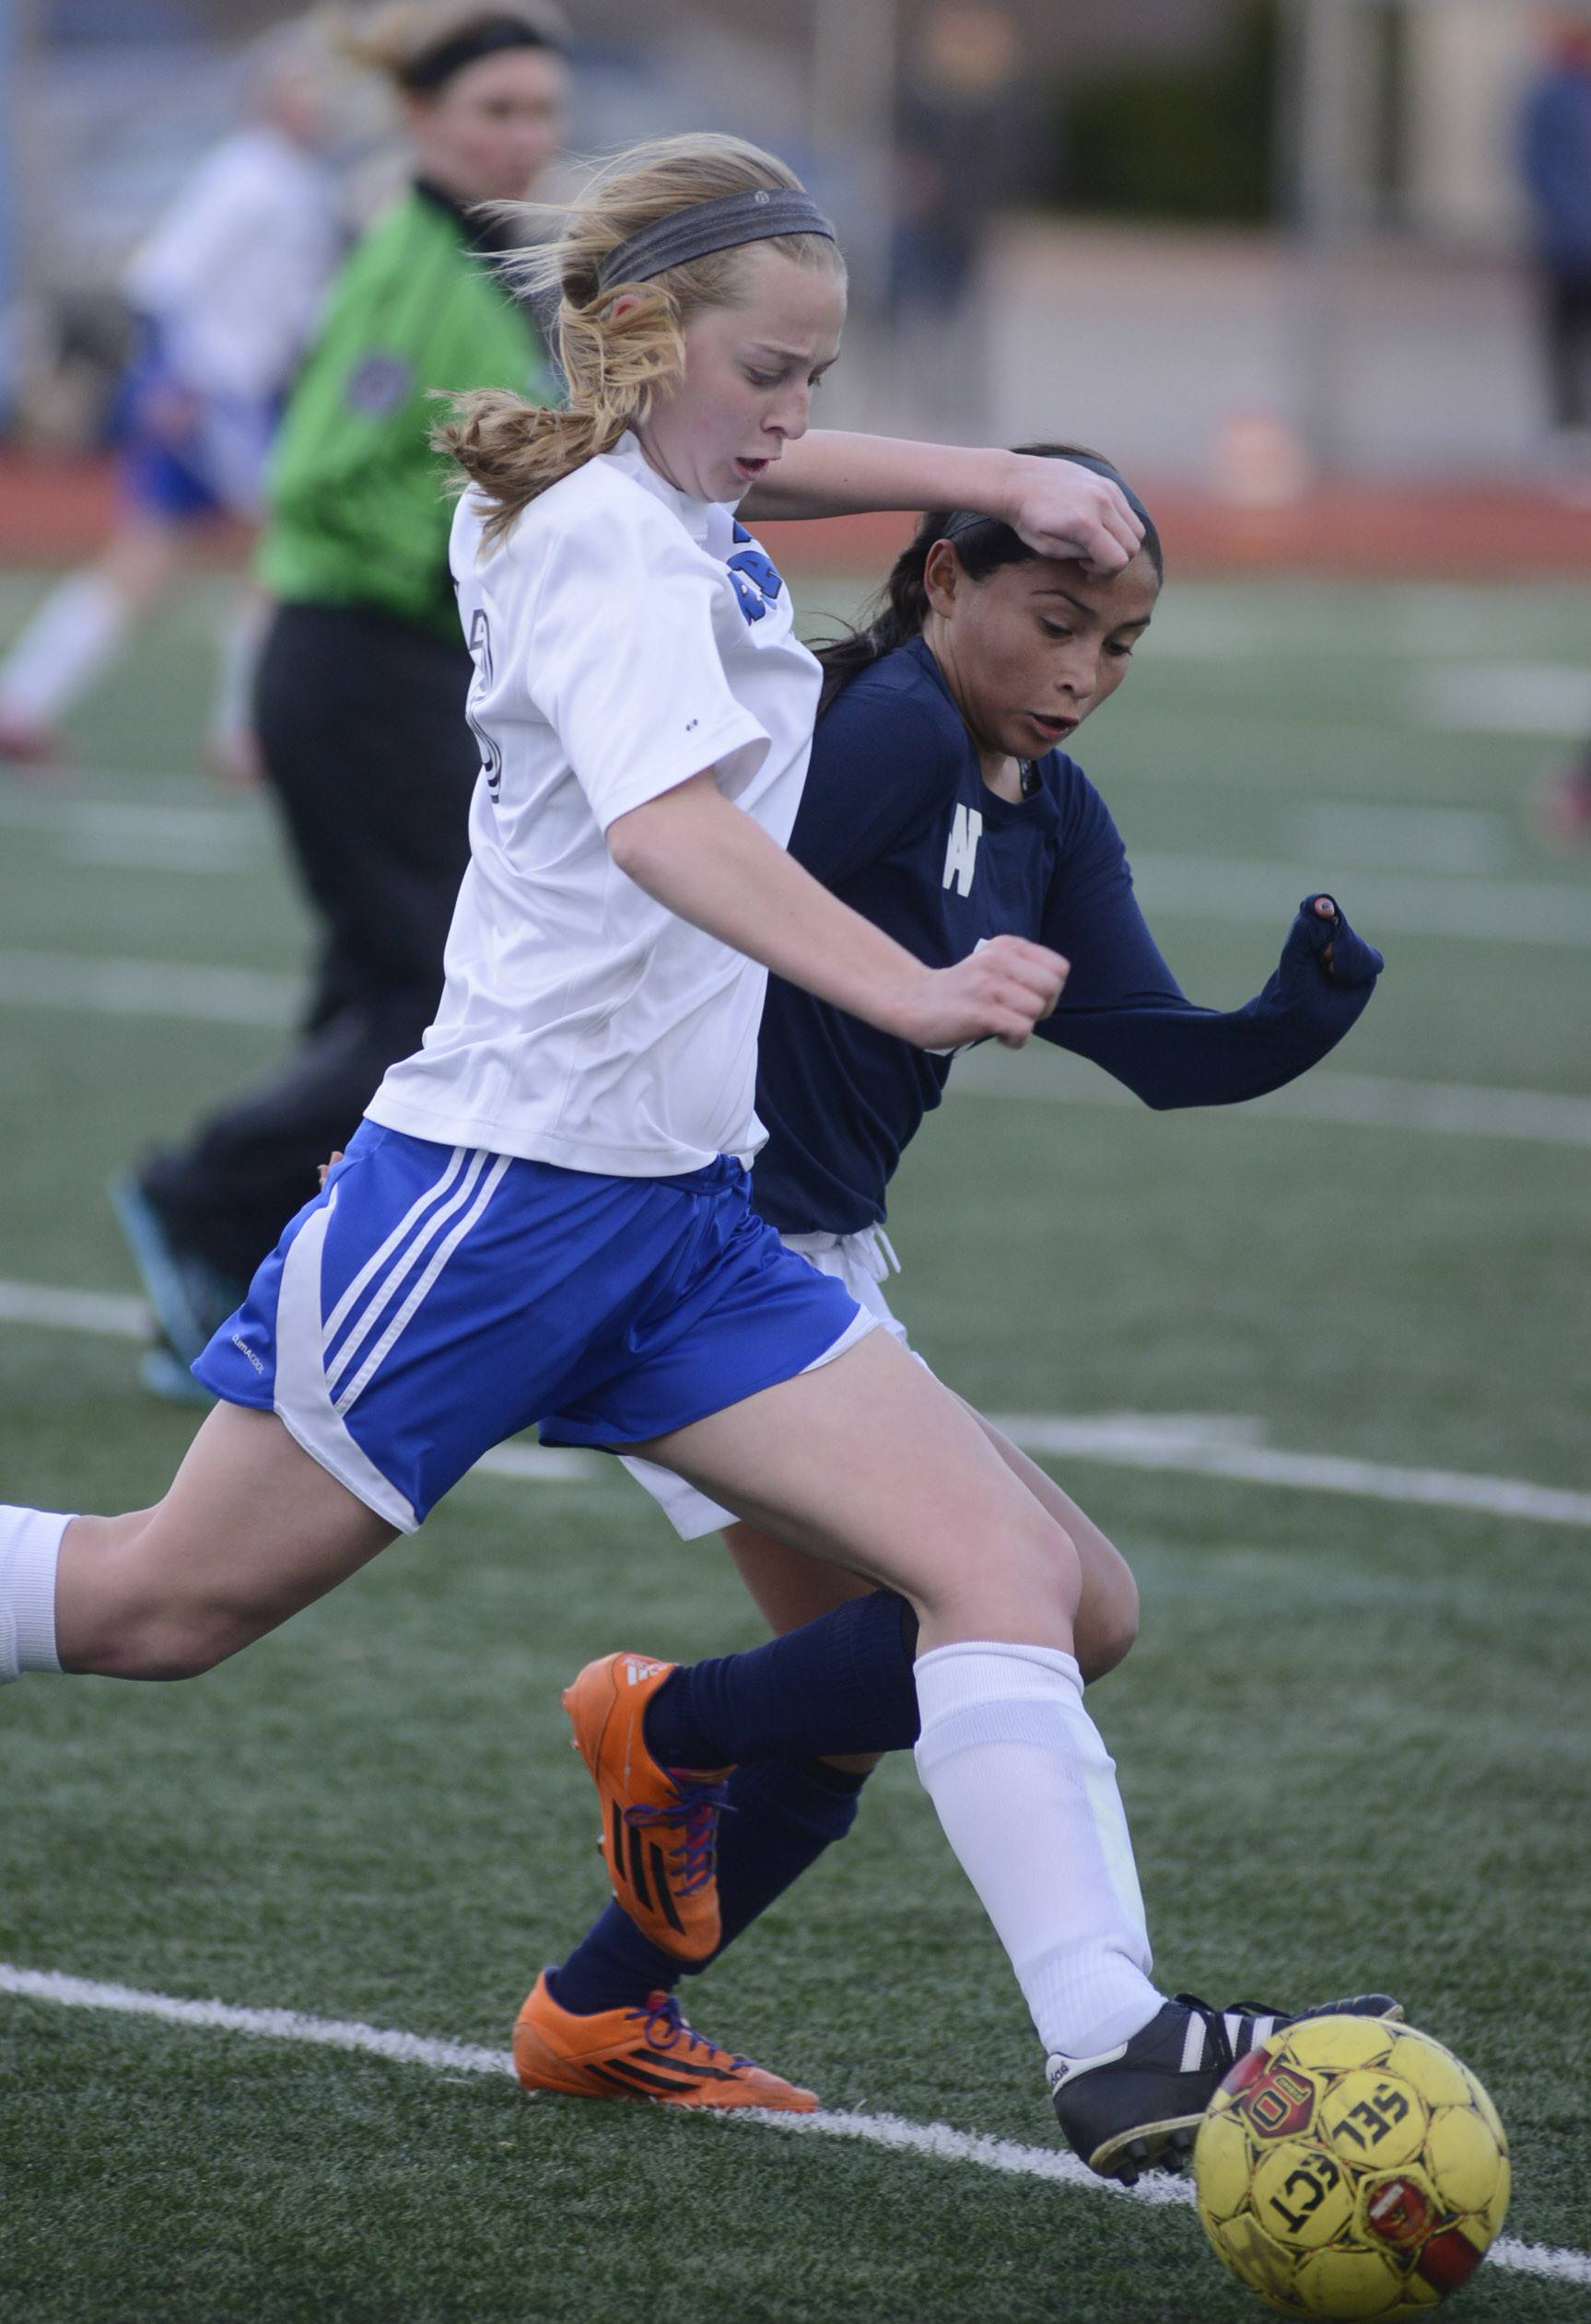 Rosary's Maria Witte, left, and West Aurora's Jocelyn Ferrar fight for the ball in the first half on Wednesday, April 16.